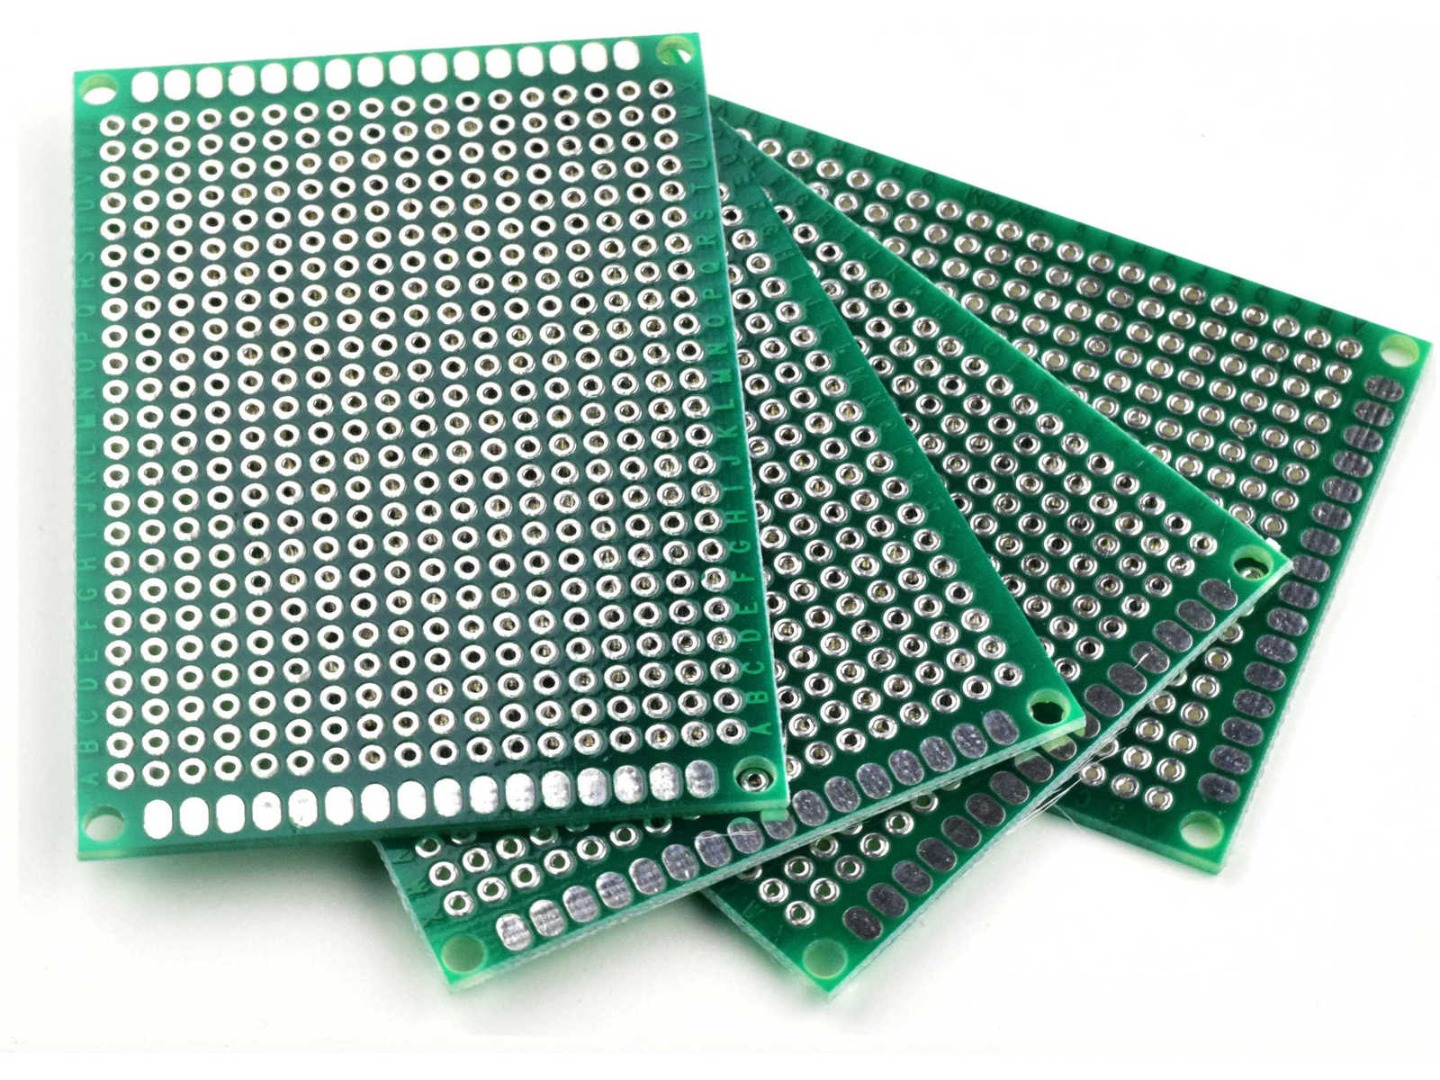 40PCs PCB Double-Sided Prototyping PCBs Circuit Boards Kit 5 Size Universal For